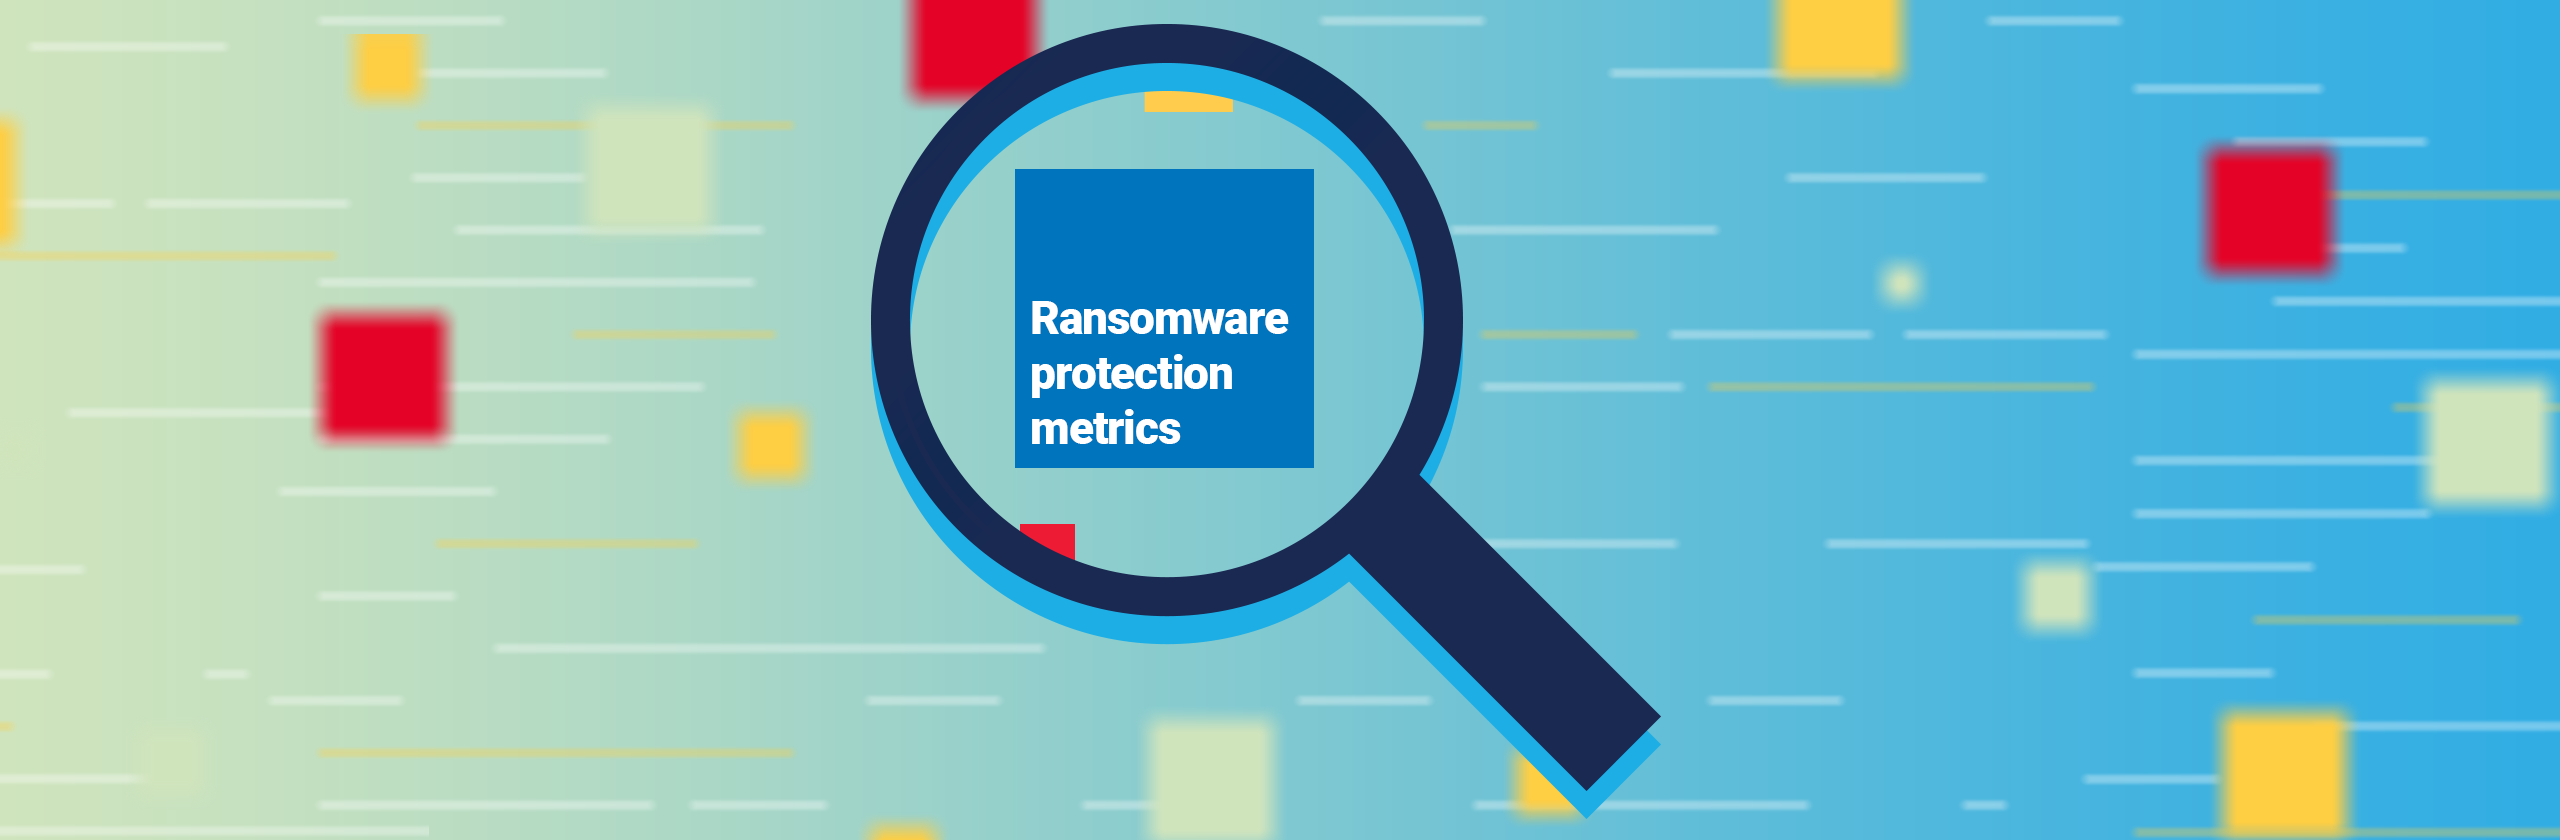 Ransomware protection metrics banner